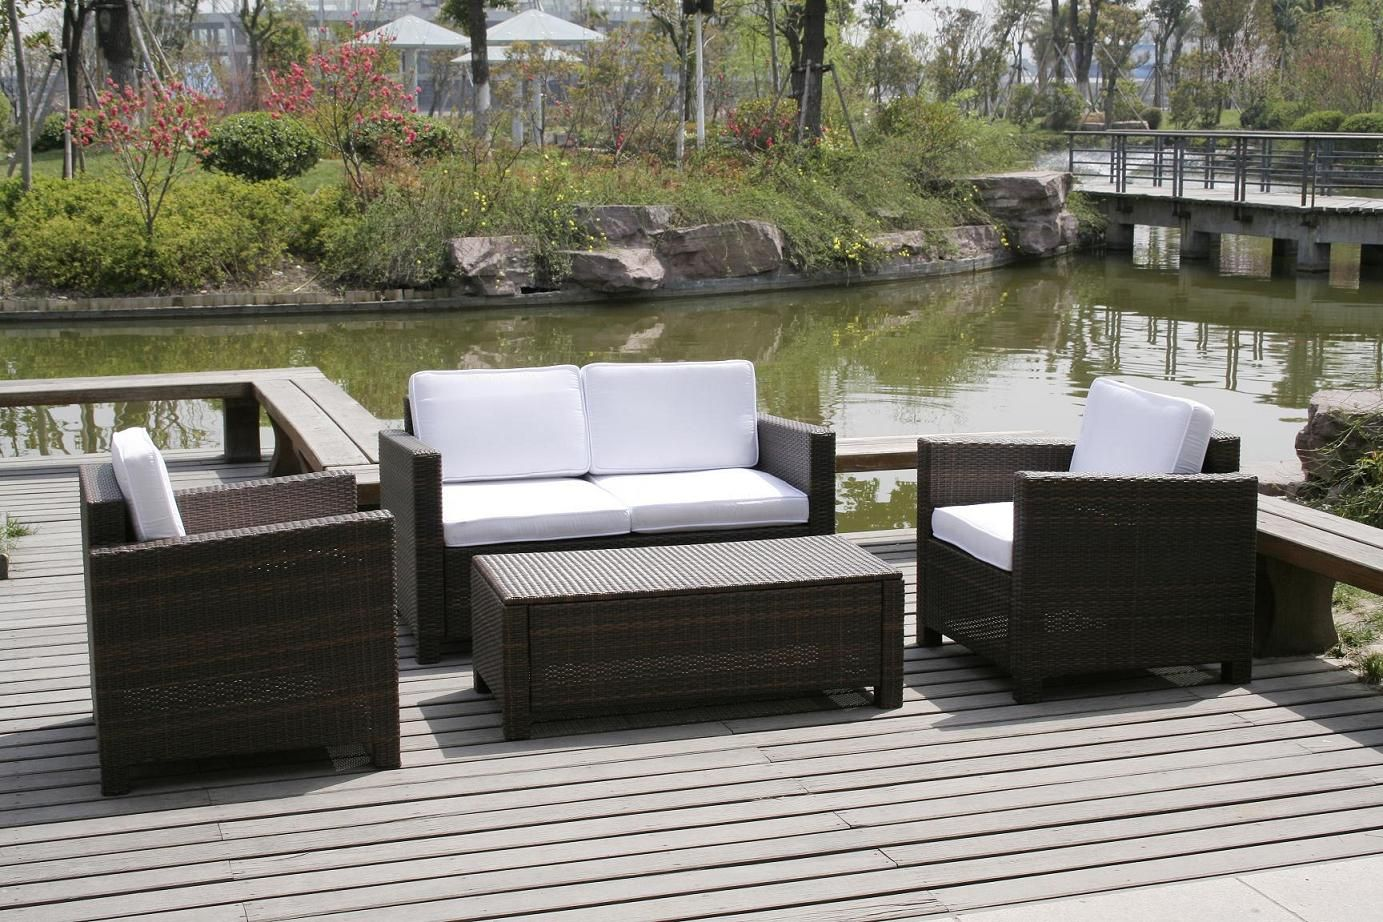 Furniture Patio Garden   Find Your Best Patio Outdoor Furniture .